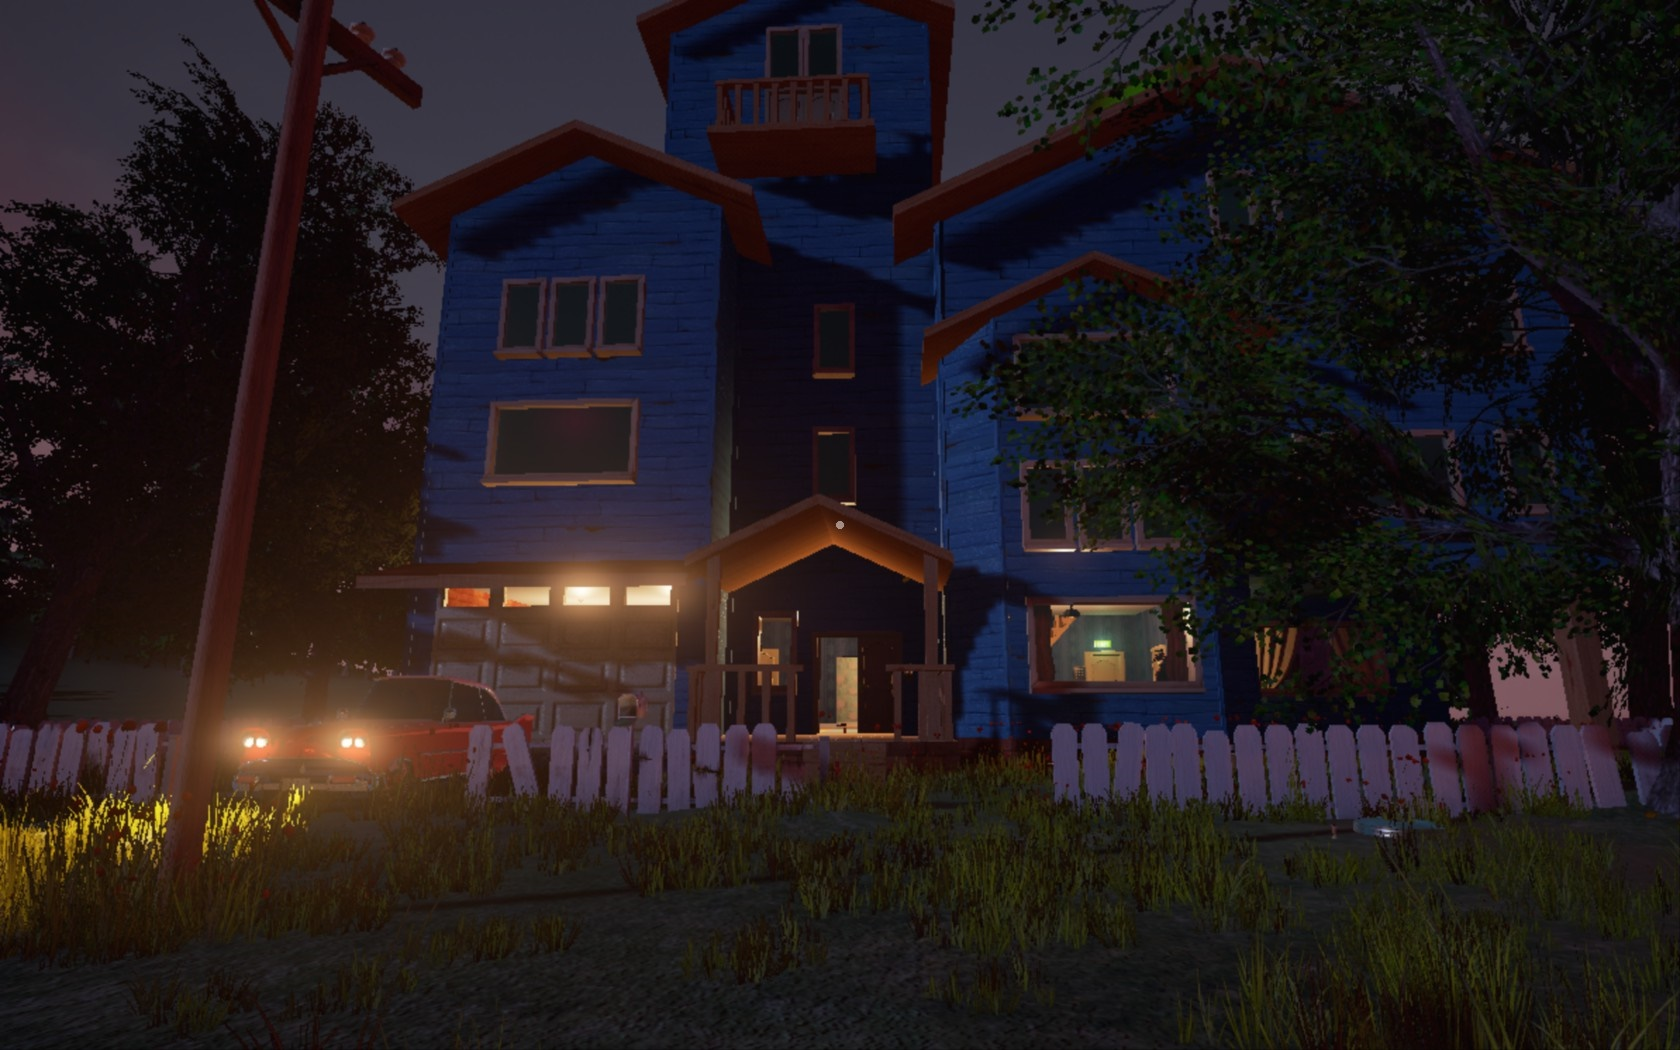 The hello neighbor house - Hello Neighbor Presents A New Kind Of Survival Horror As You Engage In A Game Of Cat And Mouse With A Single Hostile Ai The Playing Area Is Small And